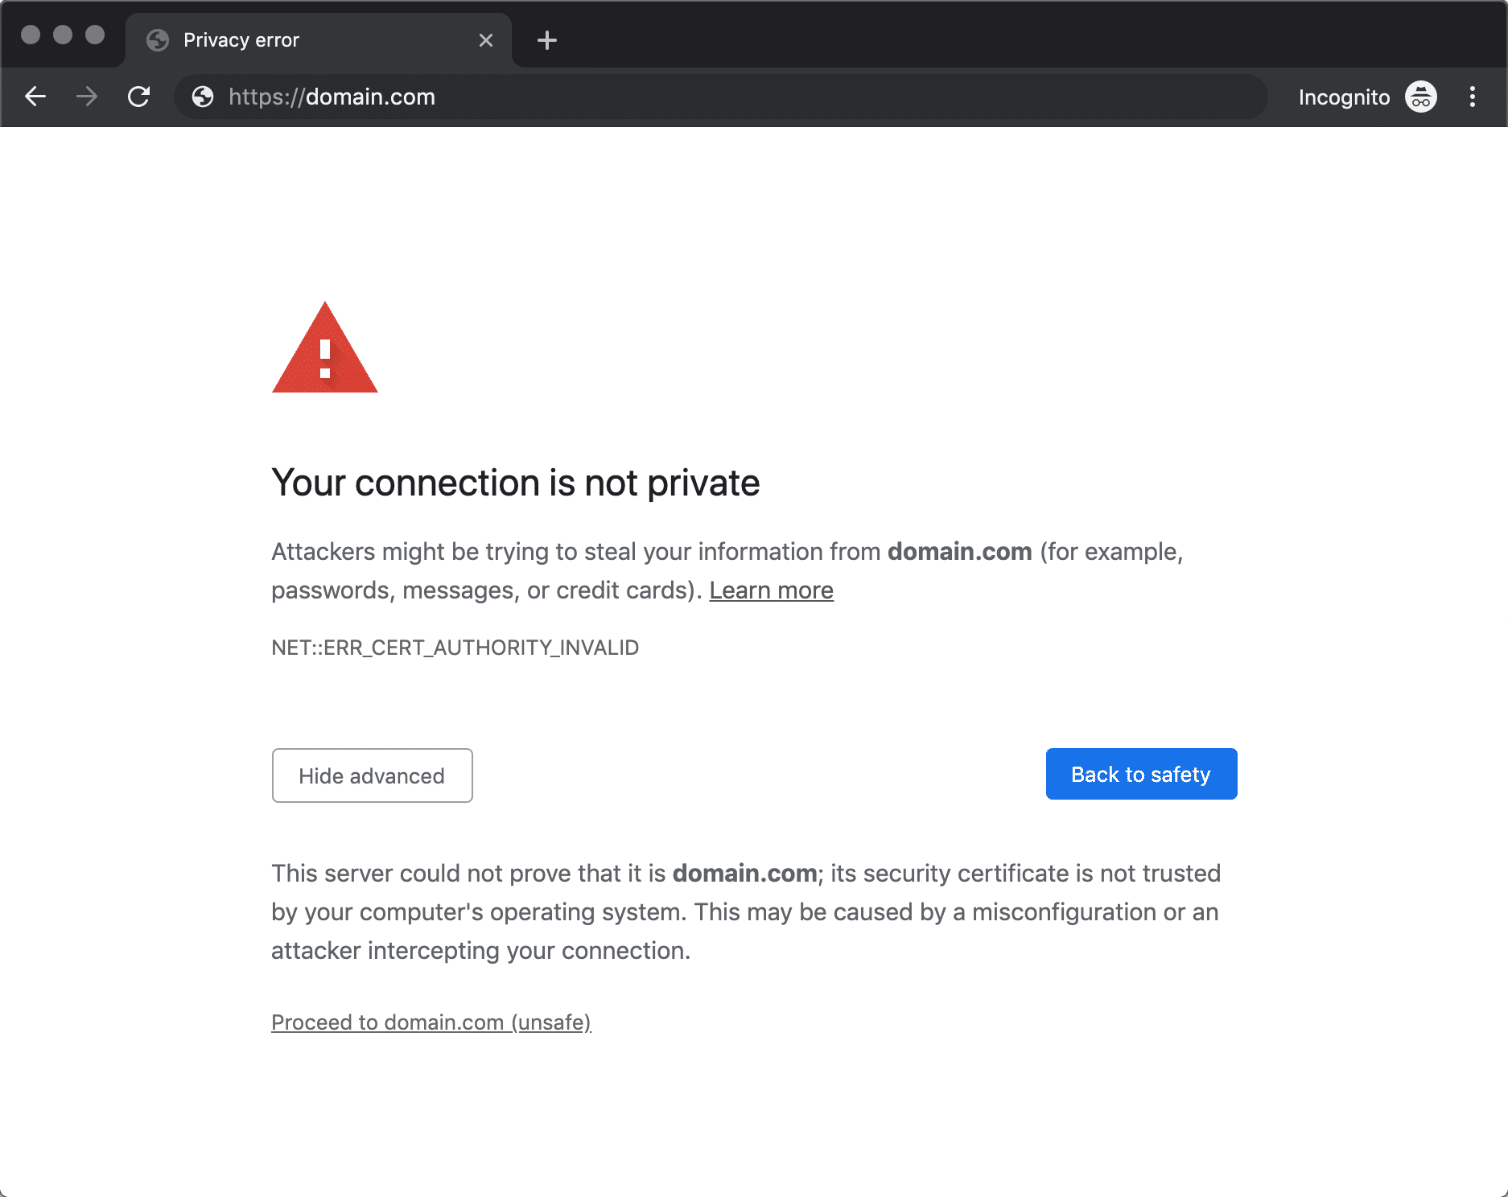 NET ERR CERT AUTHORITY INVALID error in chrome